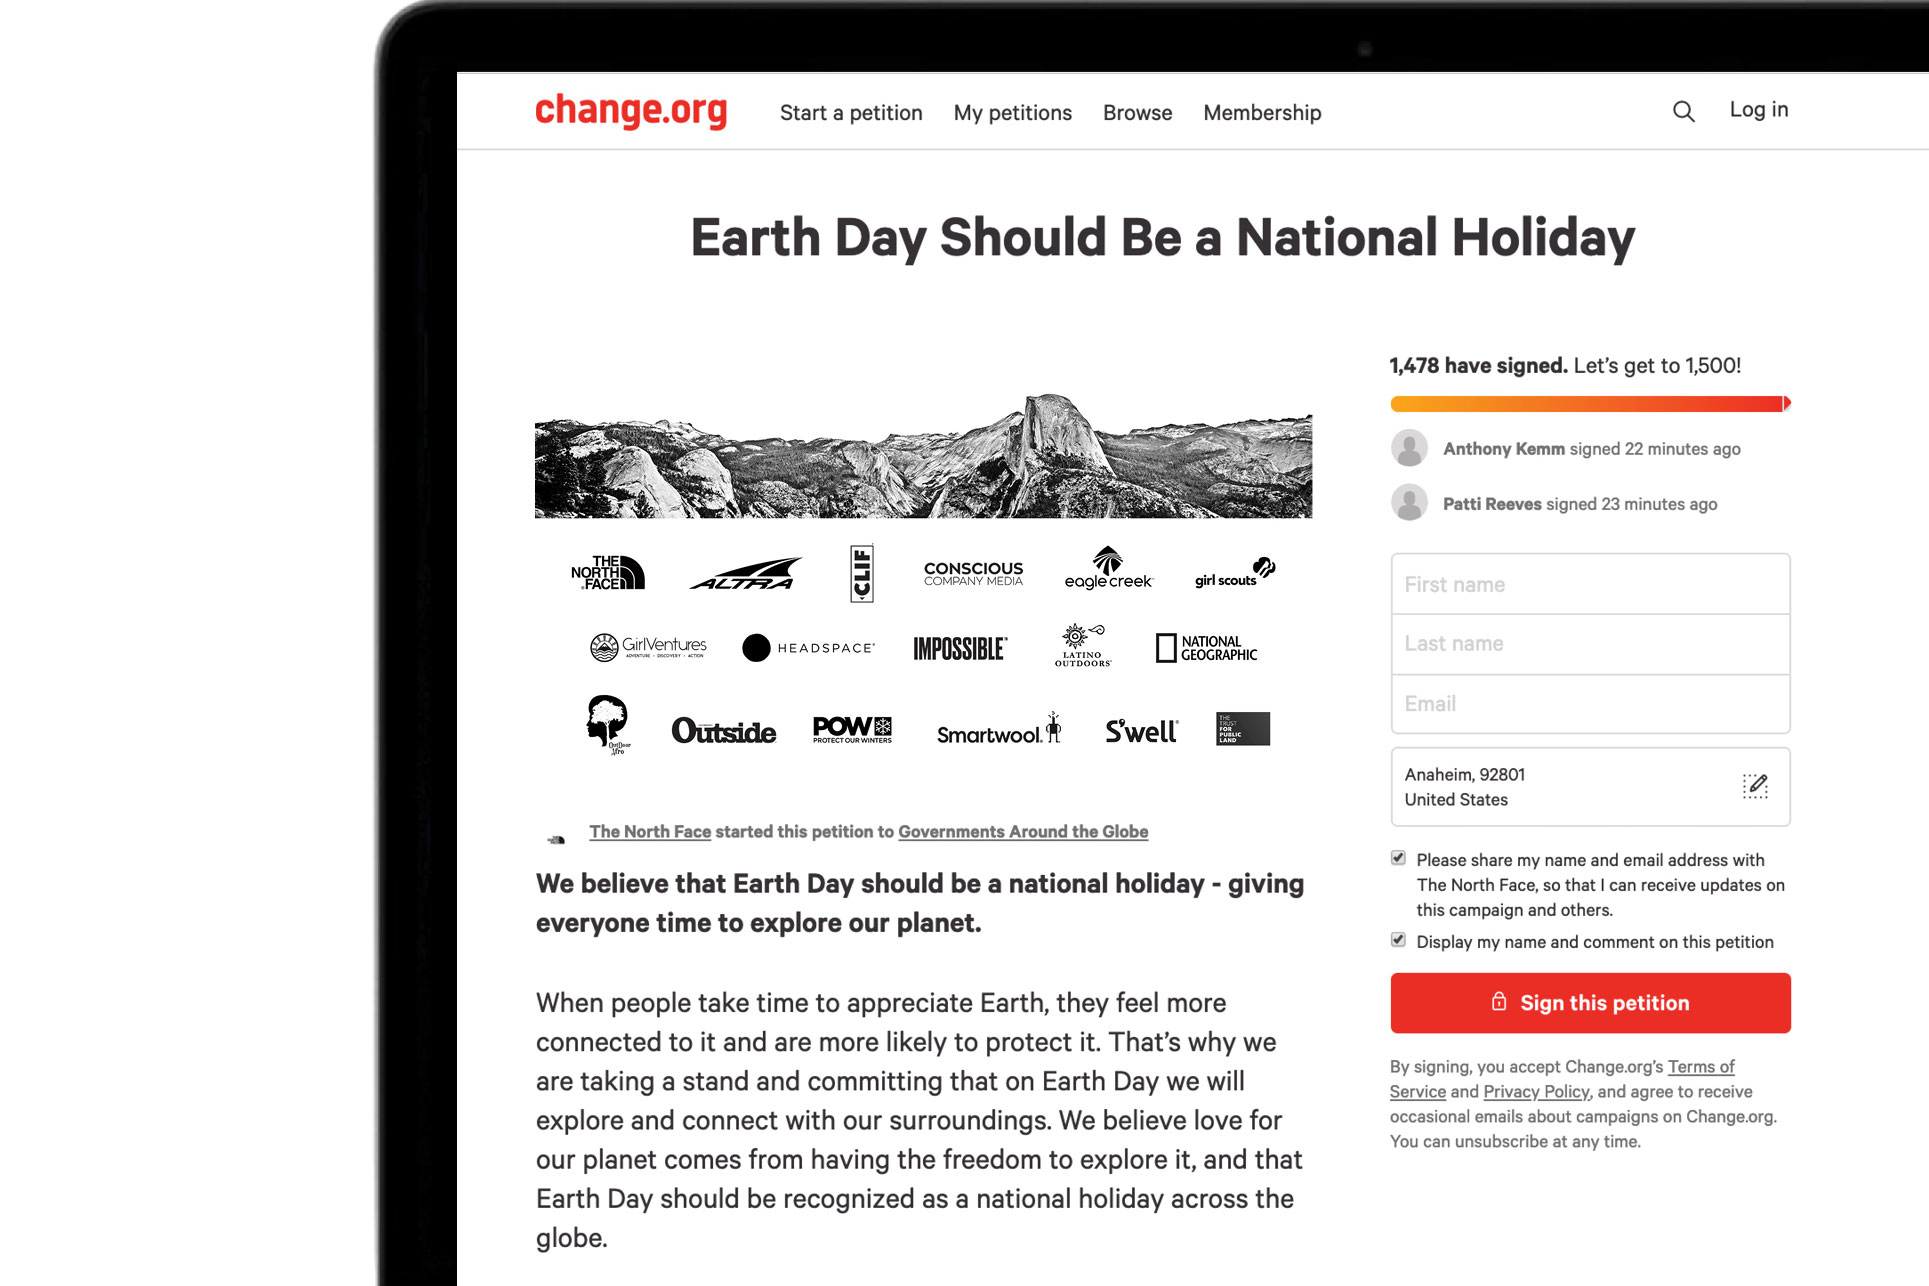 The North Face Campaigns to Make Earth Day a National Holiday